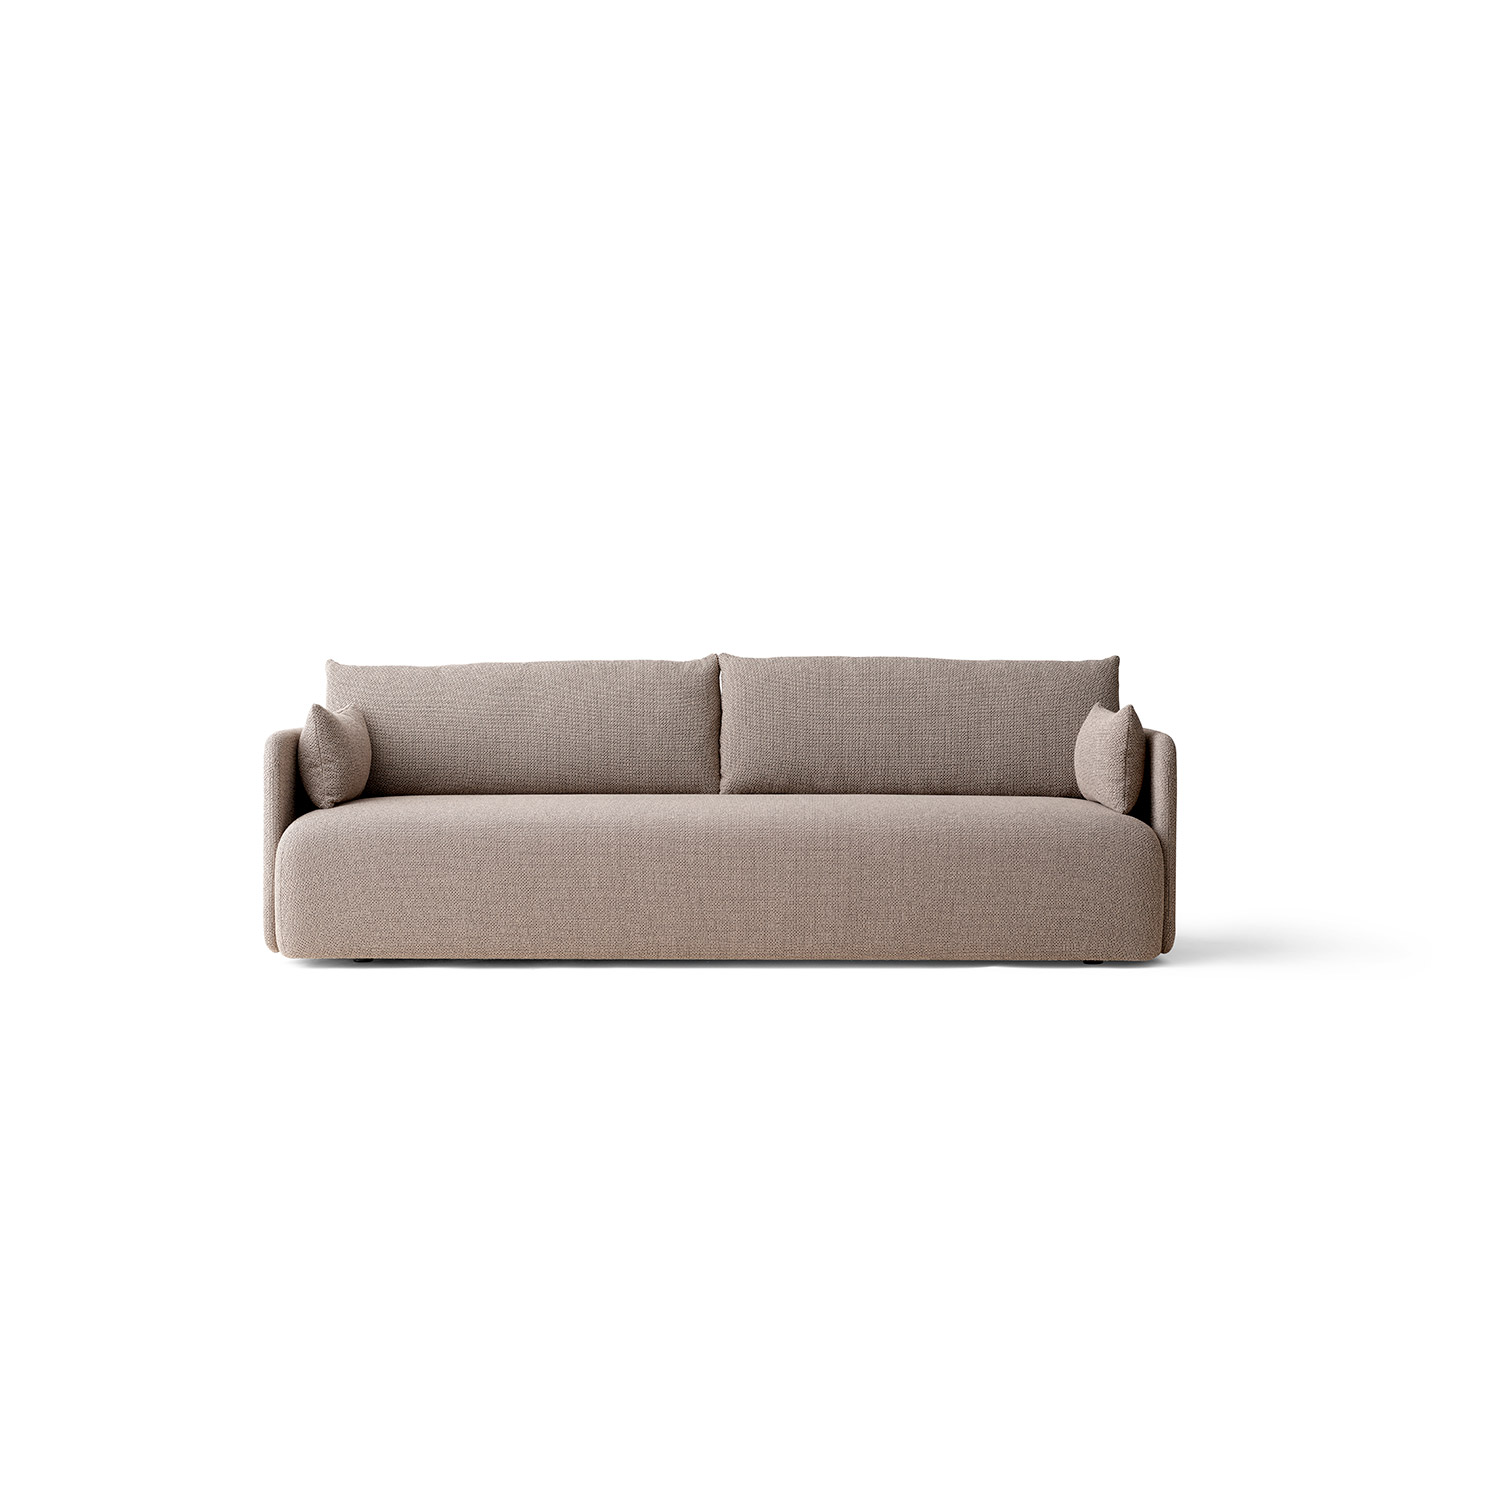 Offset Sofa 3 Seater, Maple 222